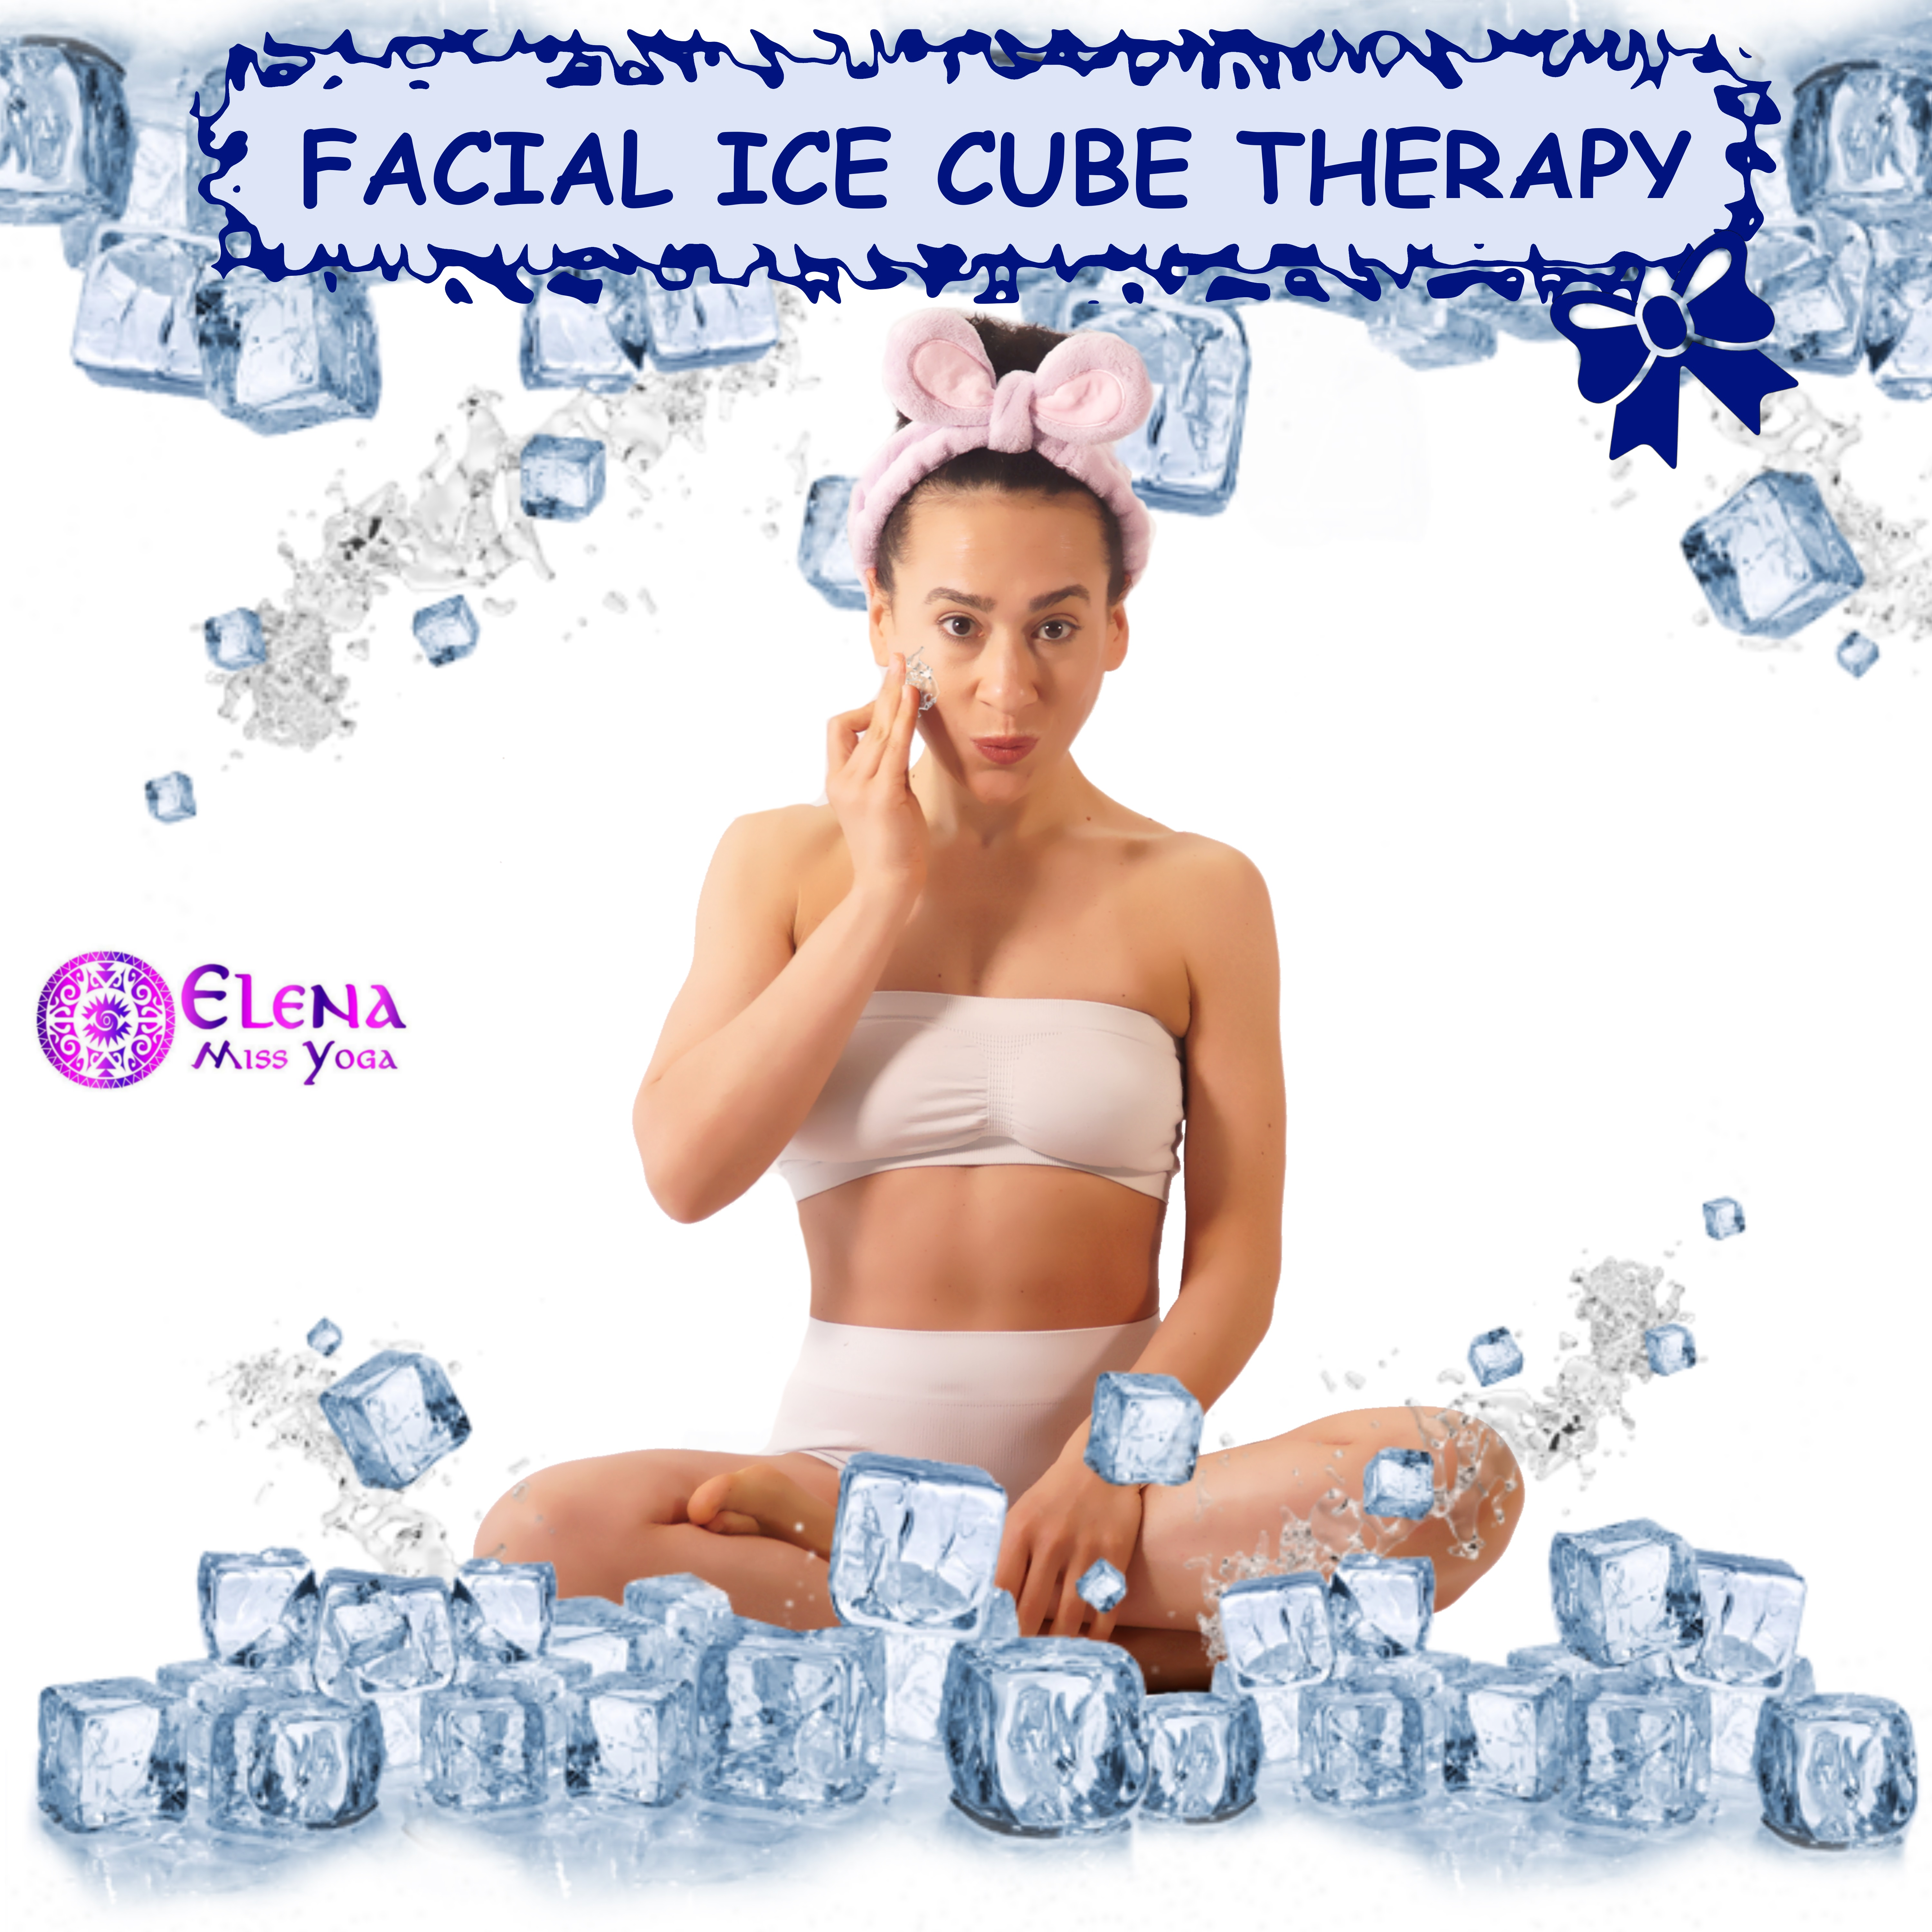 FACIAL ICE CUBE THERAPY